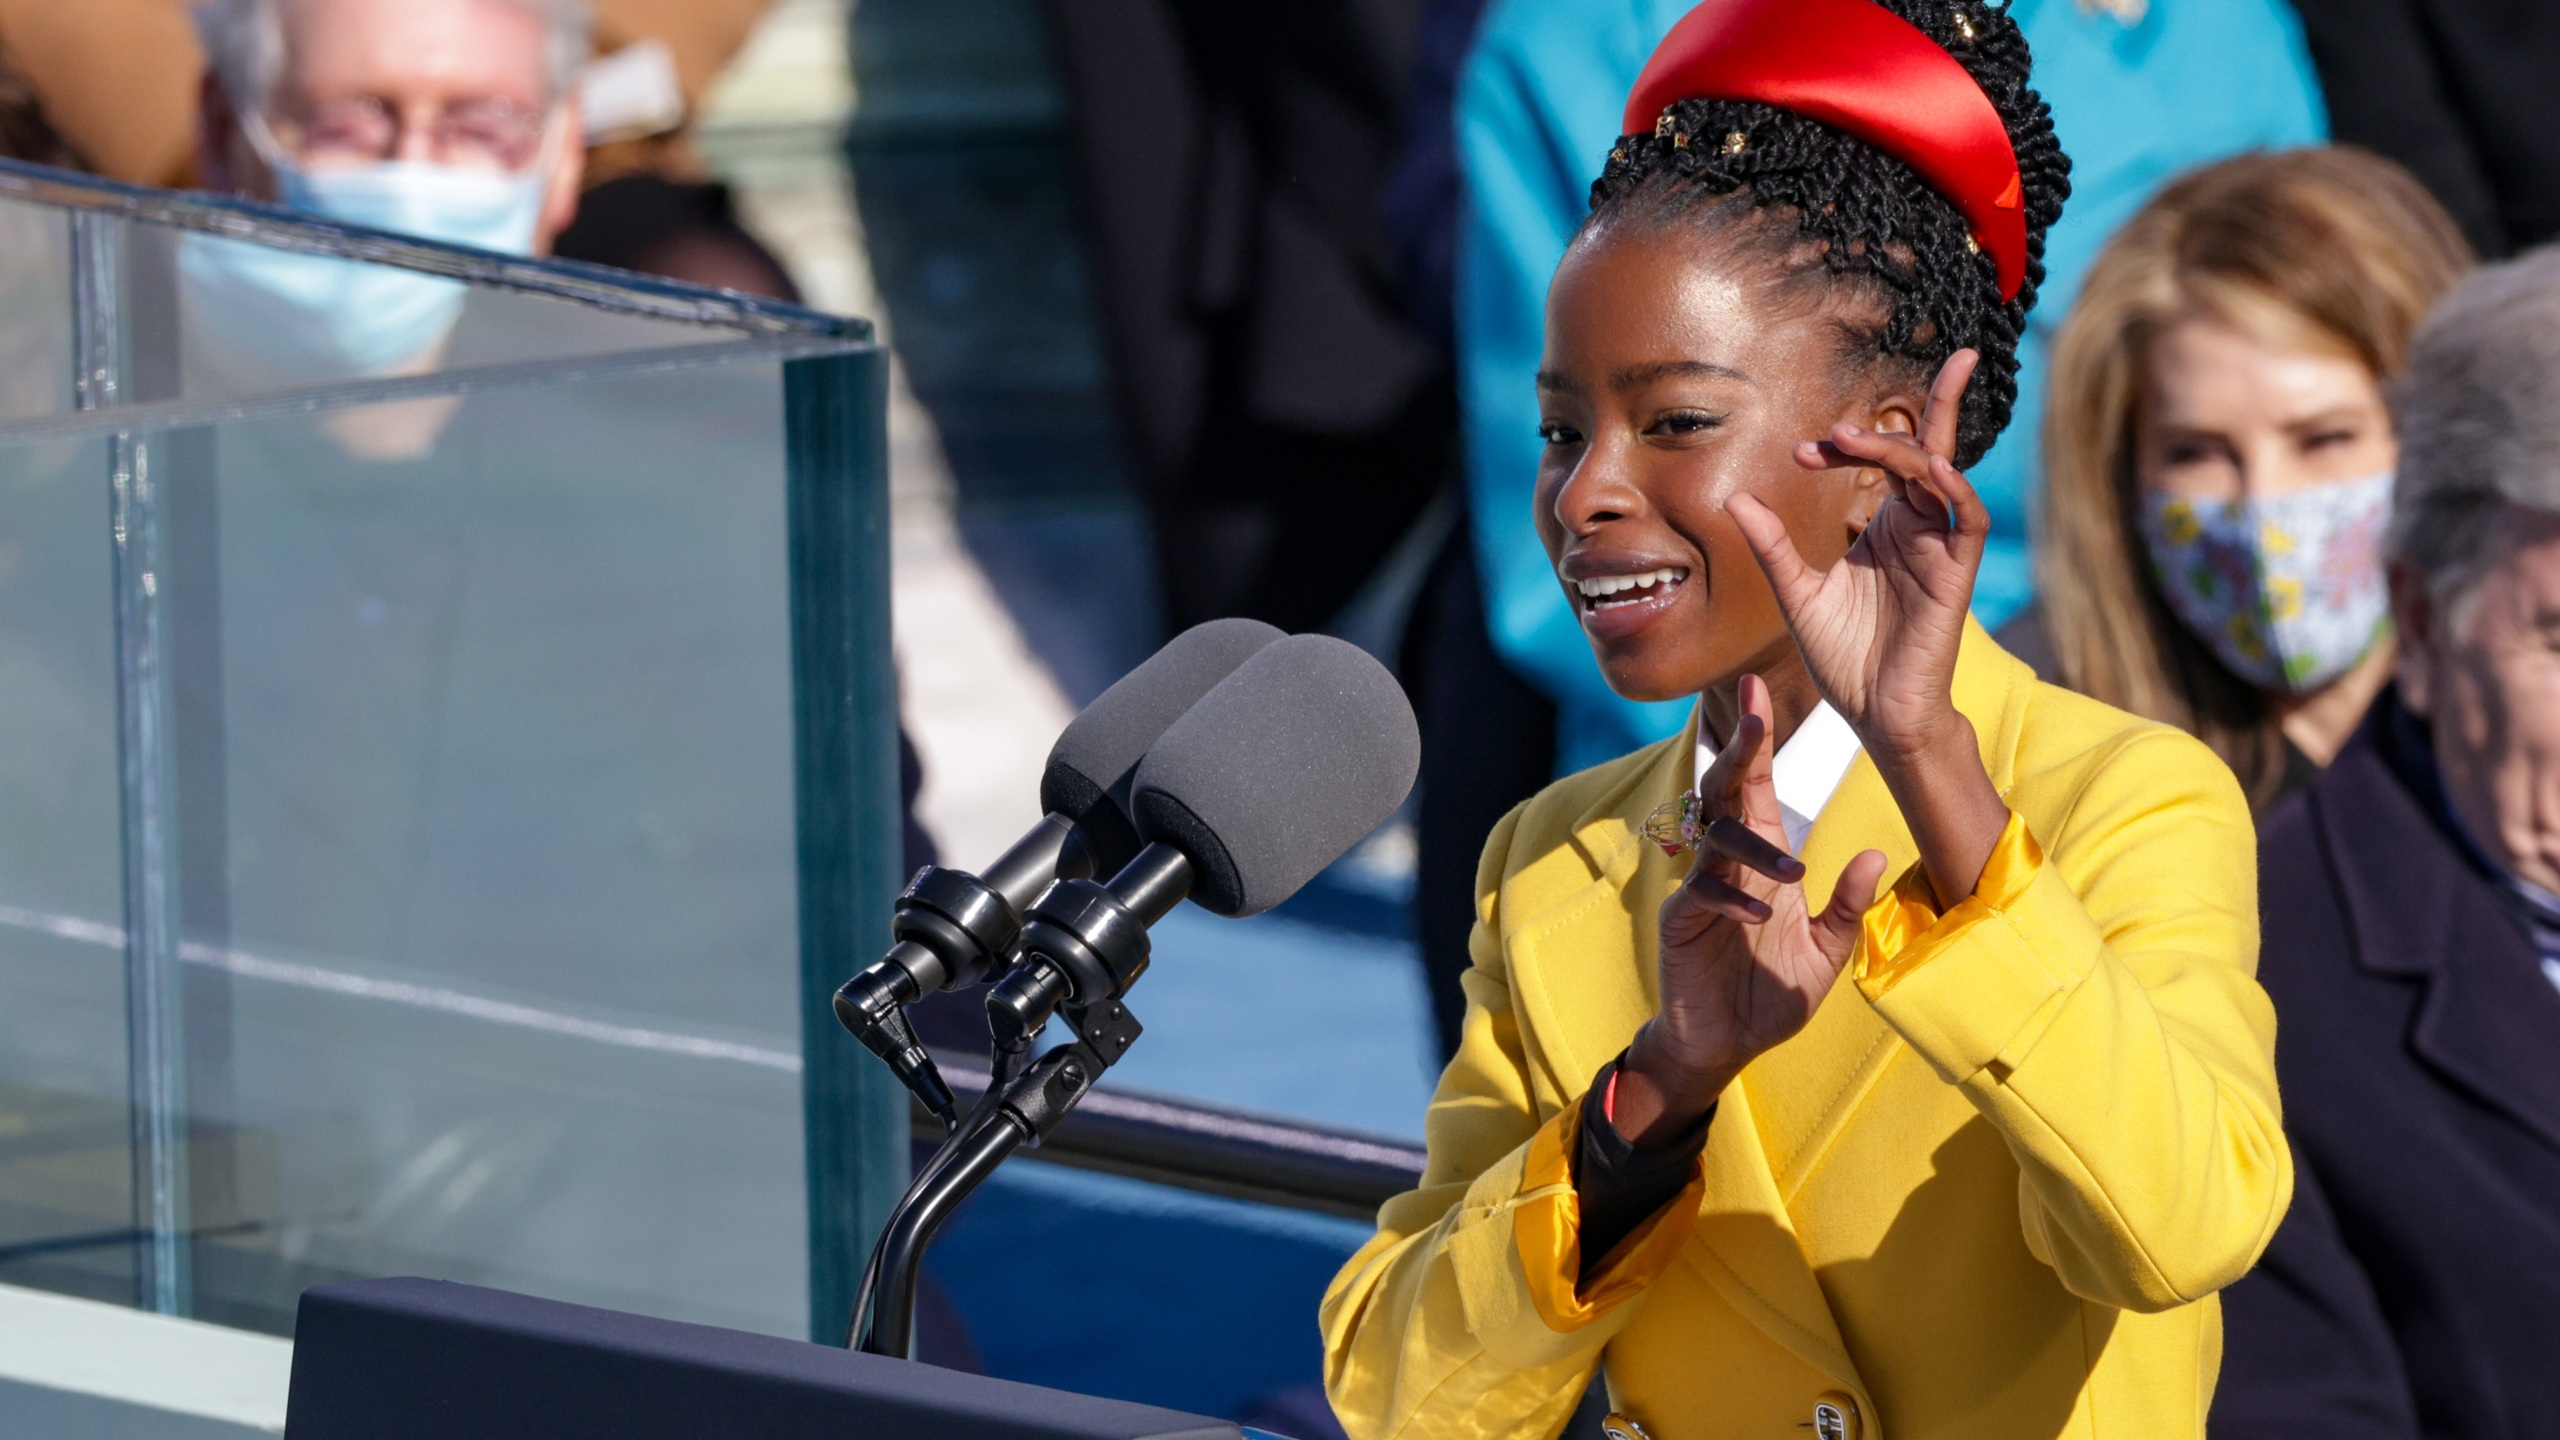 Youth Poet Laureate Amanda Gorman of L.A. speaks at the inauguration of U.S. President Joe Biden on the West Front of the U.S. Capitol on Jan. 20, 2021 in Washington, DC. (Photo by Alex Wong/Getty Images)